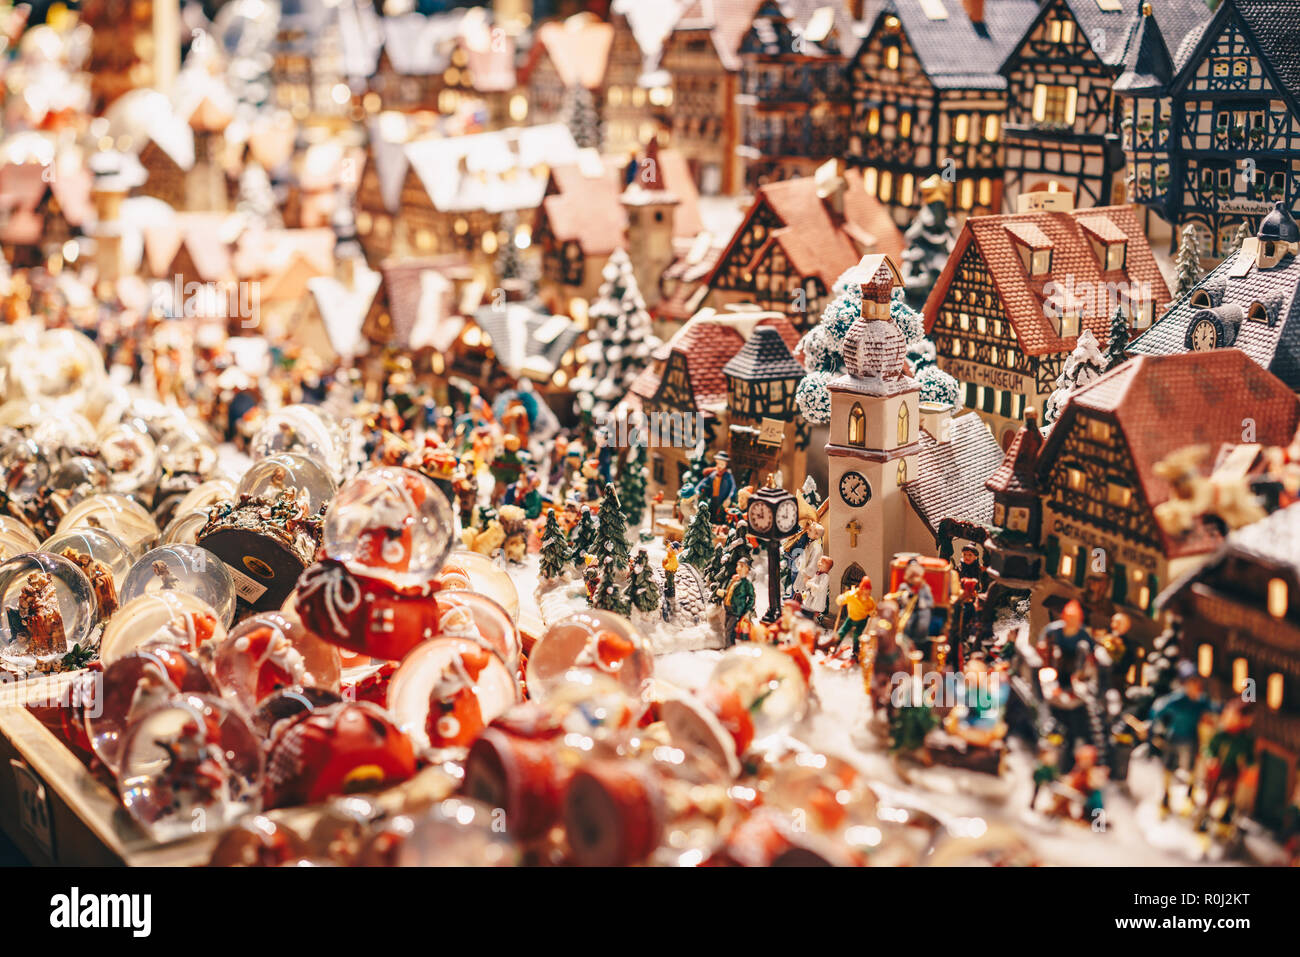 Handcrafted Traditional Christmas Tree Decorations Sold In Salzburg Christmas Market Stock Photo Alamy